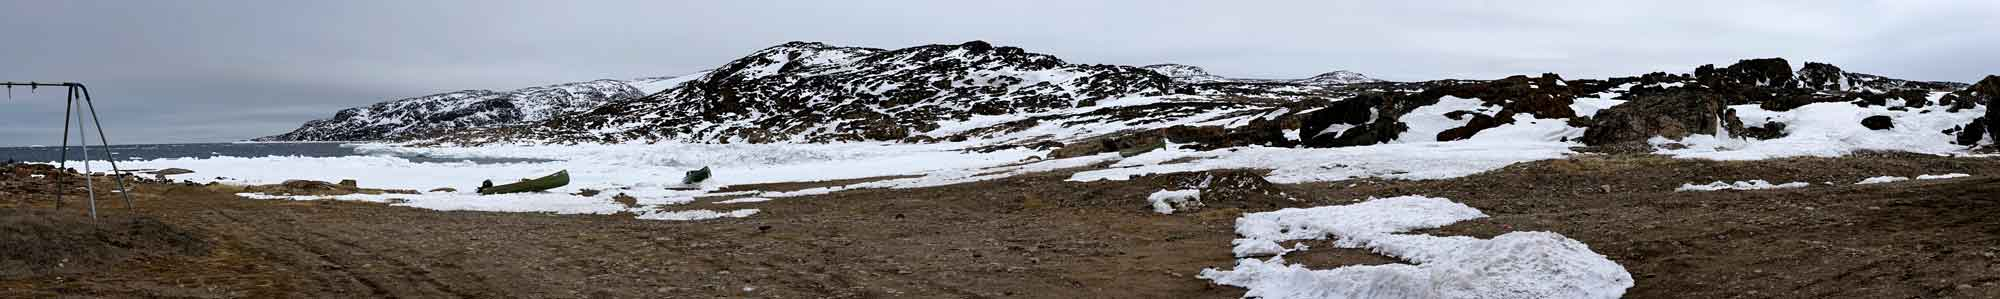 ©Christine-Montague-Cape-Dorset-park-pano.